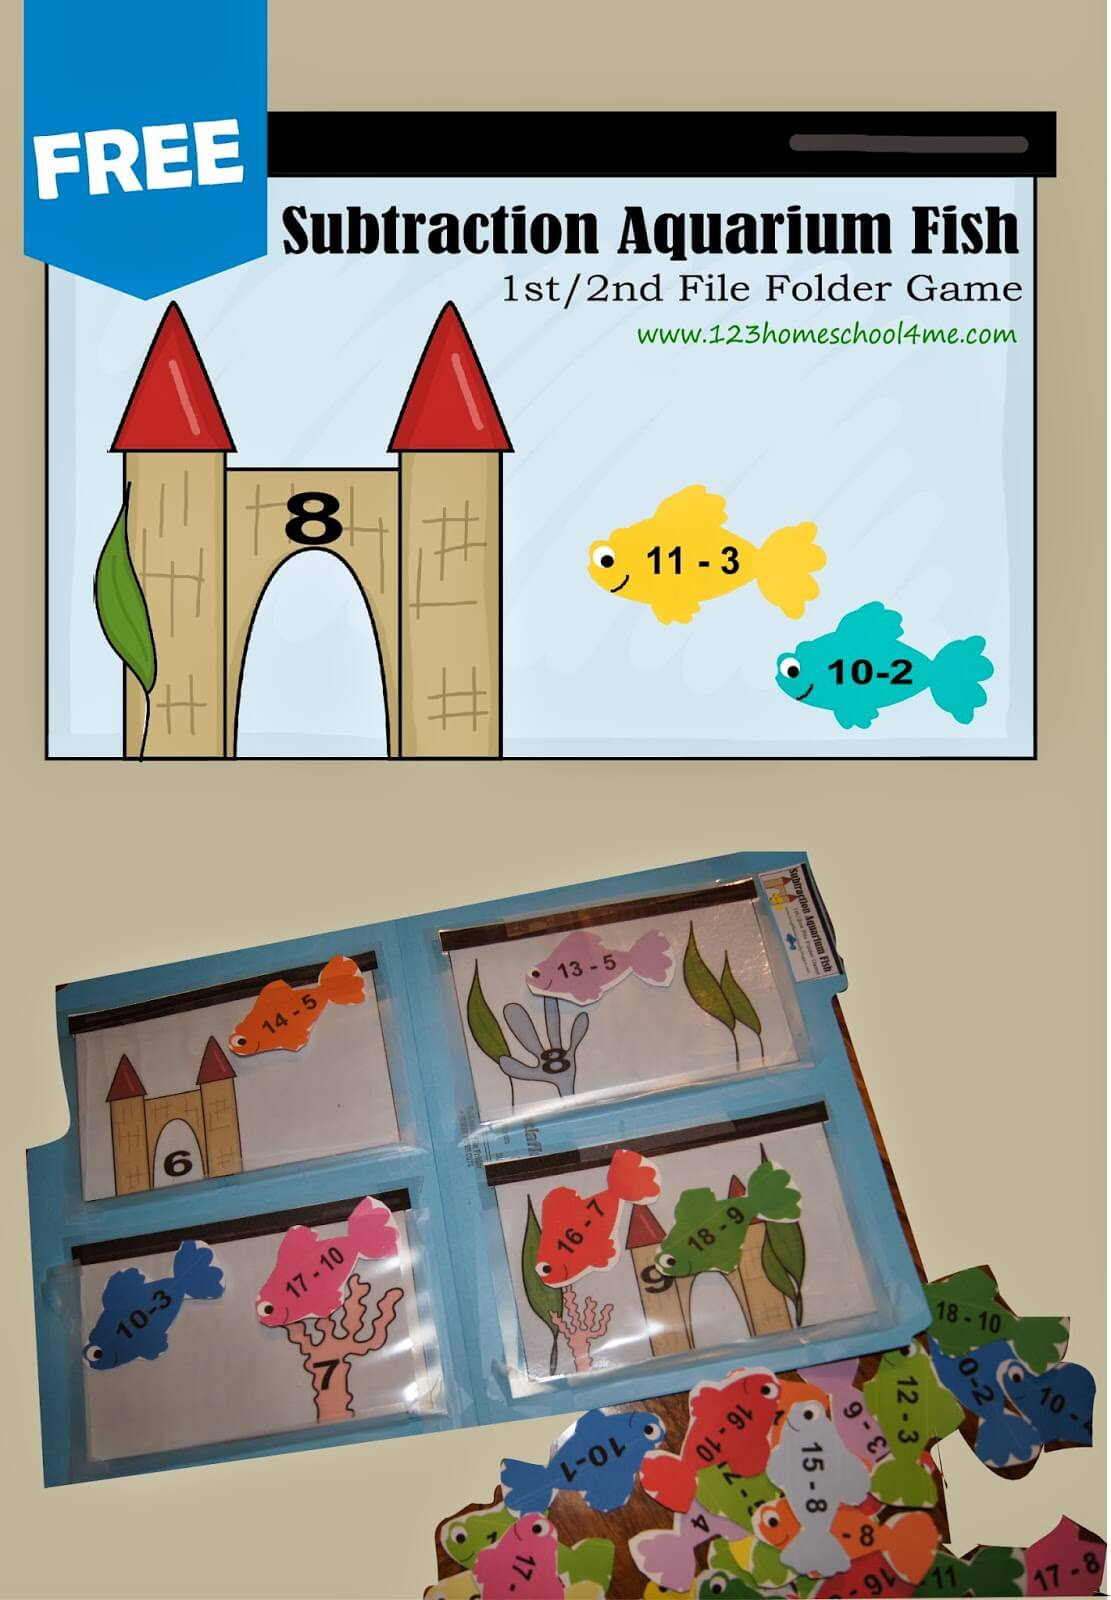 Help kid practice subtraction with the free printable math games for 1st grade and 2nd grade kids with a Aquarium fish theme.